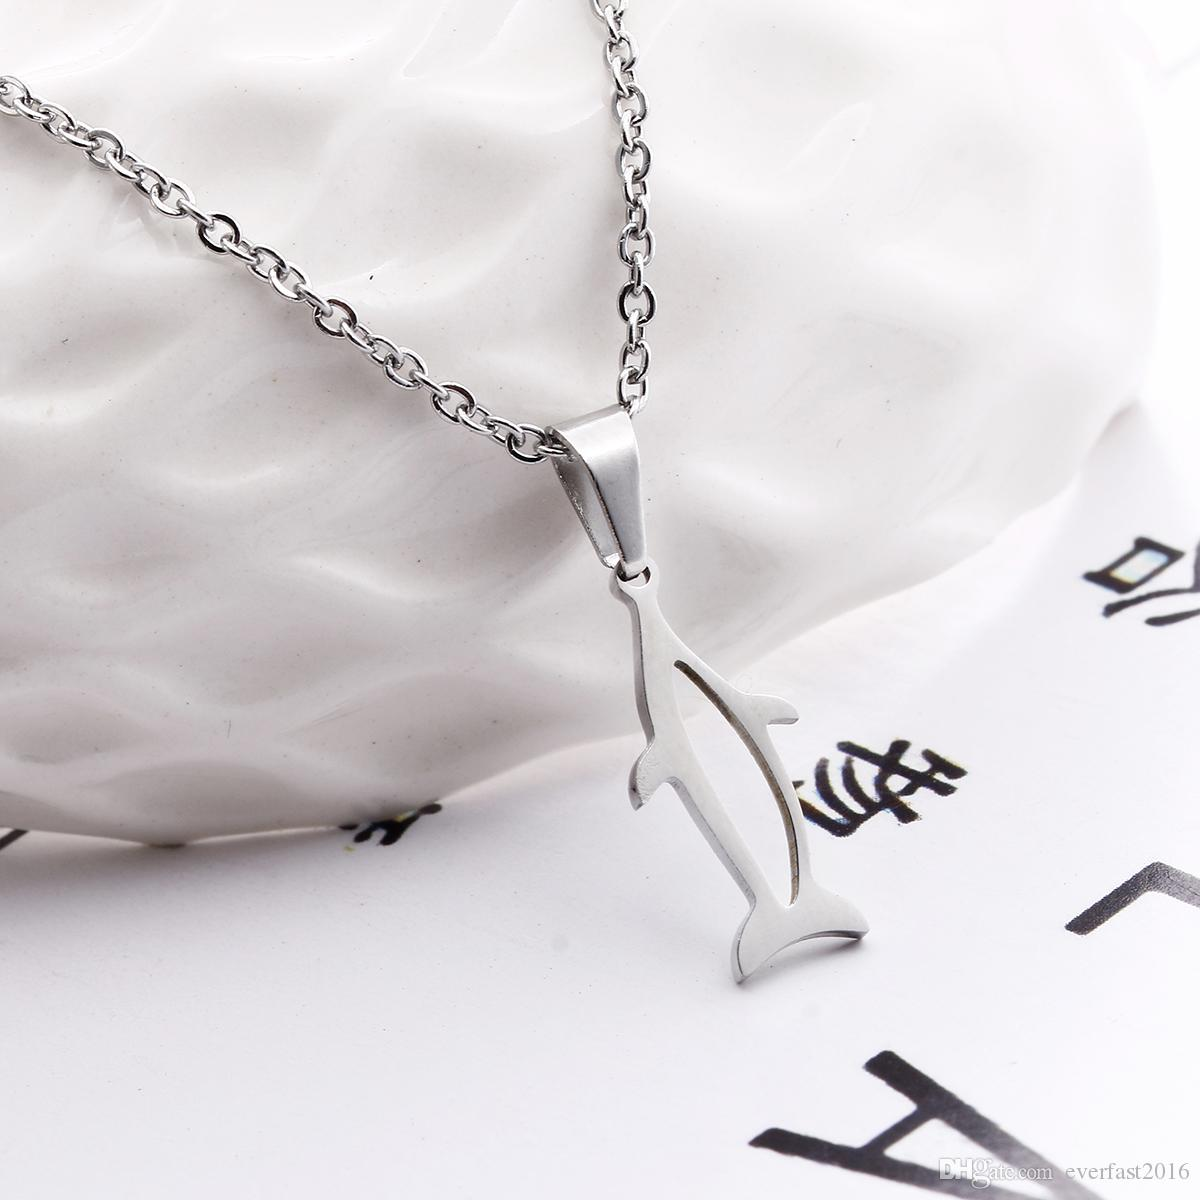 EVERFAST New Cute Hollow Whale Pendant O Chain Chokers Necklaces Stainless Steel Sailor Necklace For Women Men Jewelry SN024